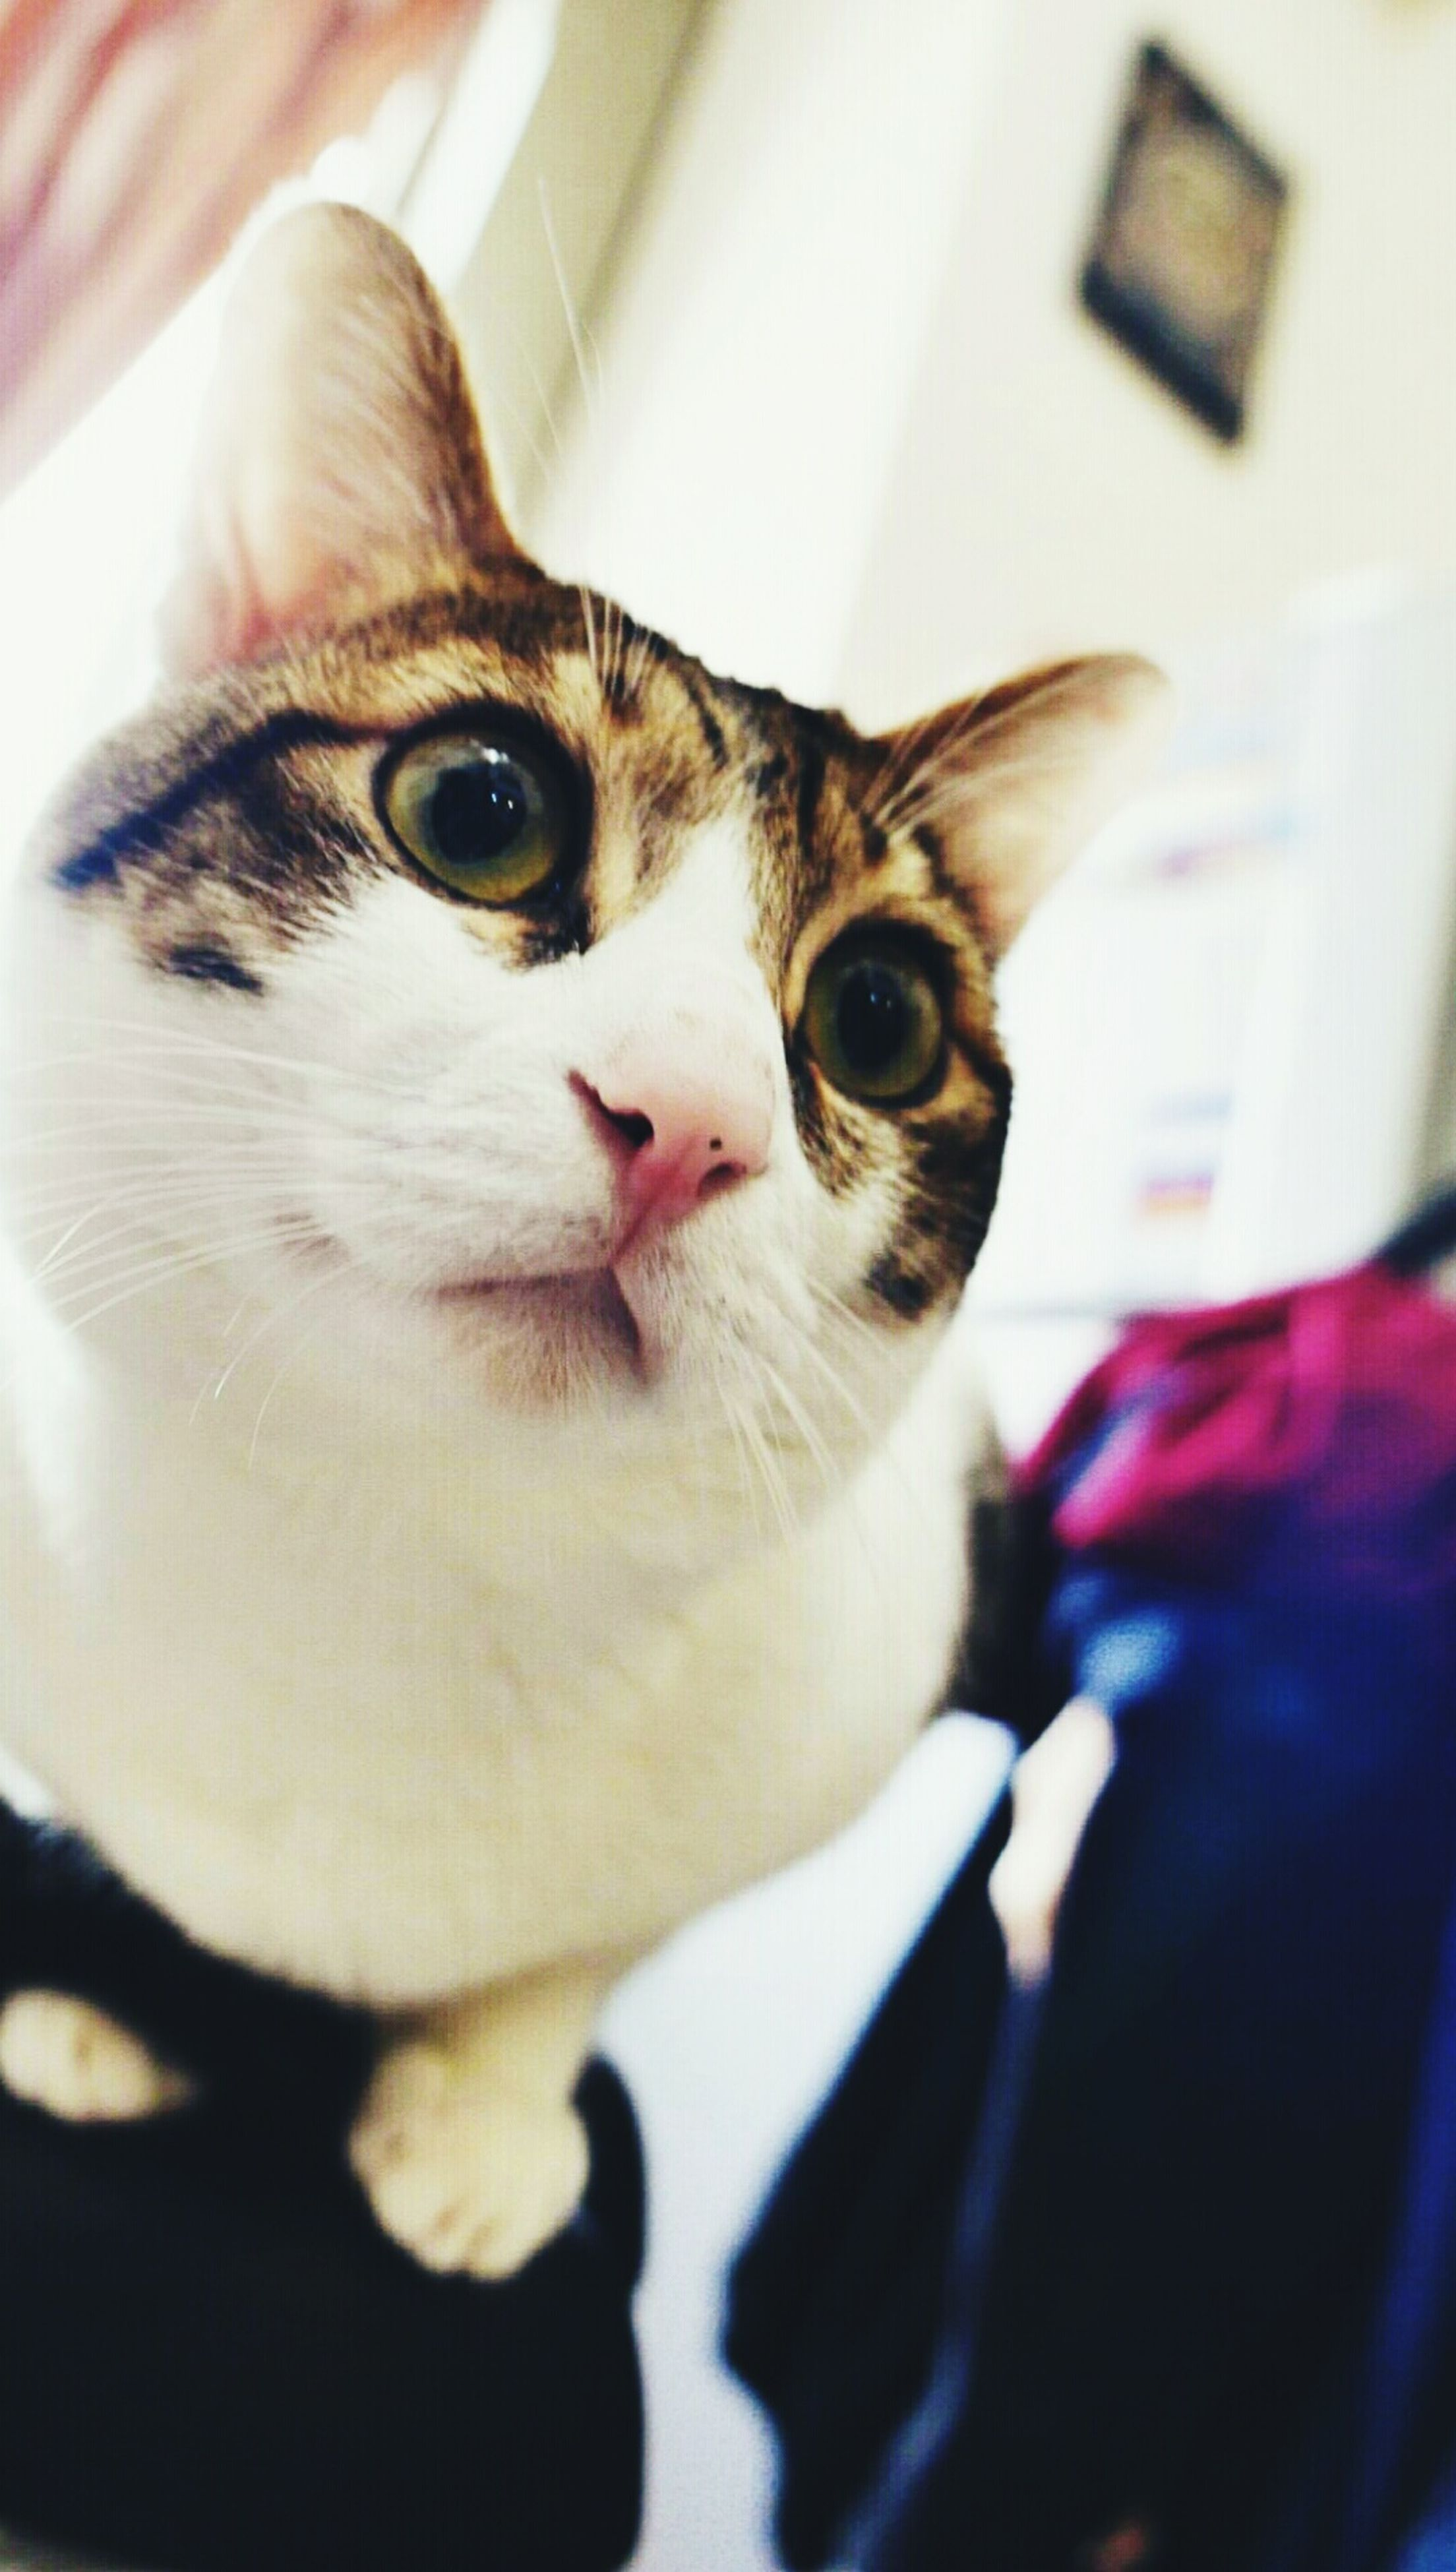 indoors, pets, one animal, animal themes, domestic animals, domestic cat, close-up, cat, looking at camera, portrait, whisker, mammal, feline, focus on foreground, home interior, animal head, sitting, selective focus, white color, front view